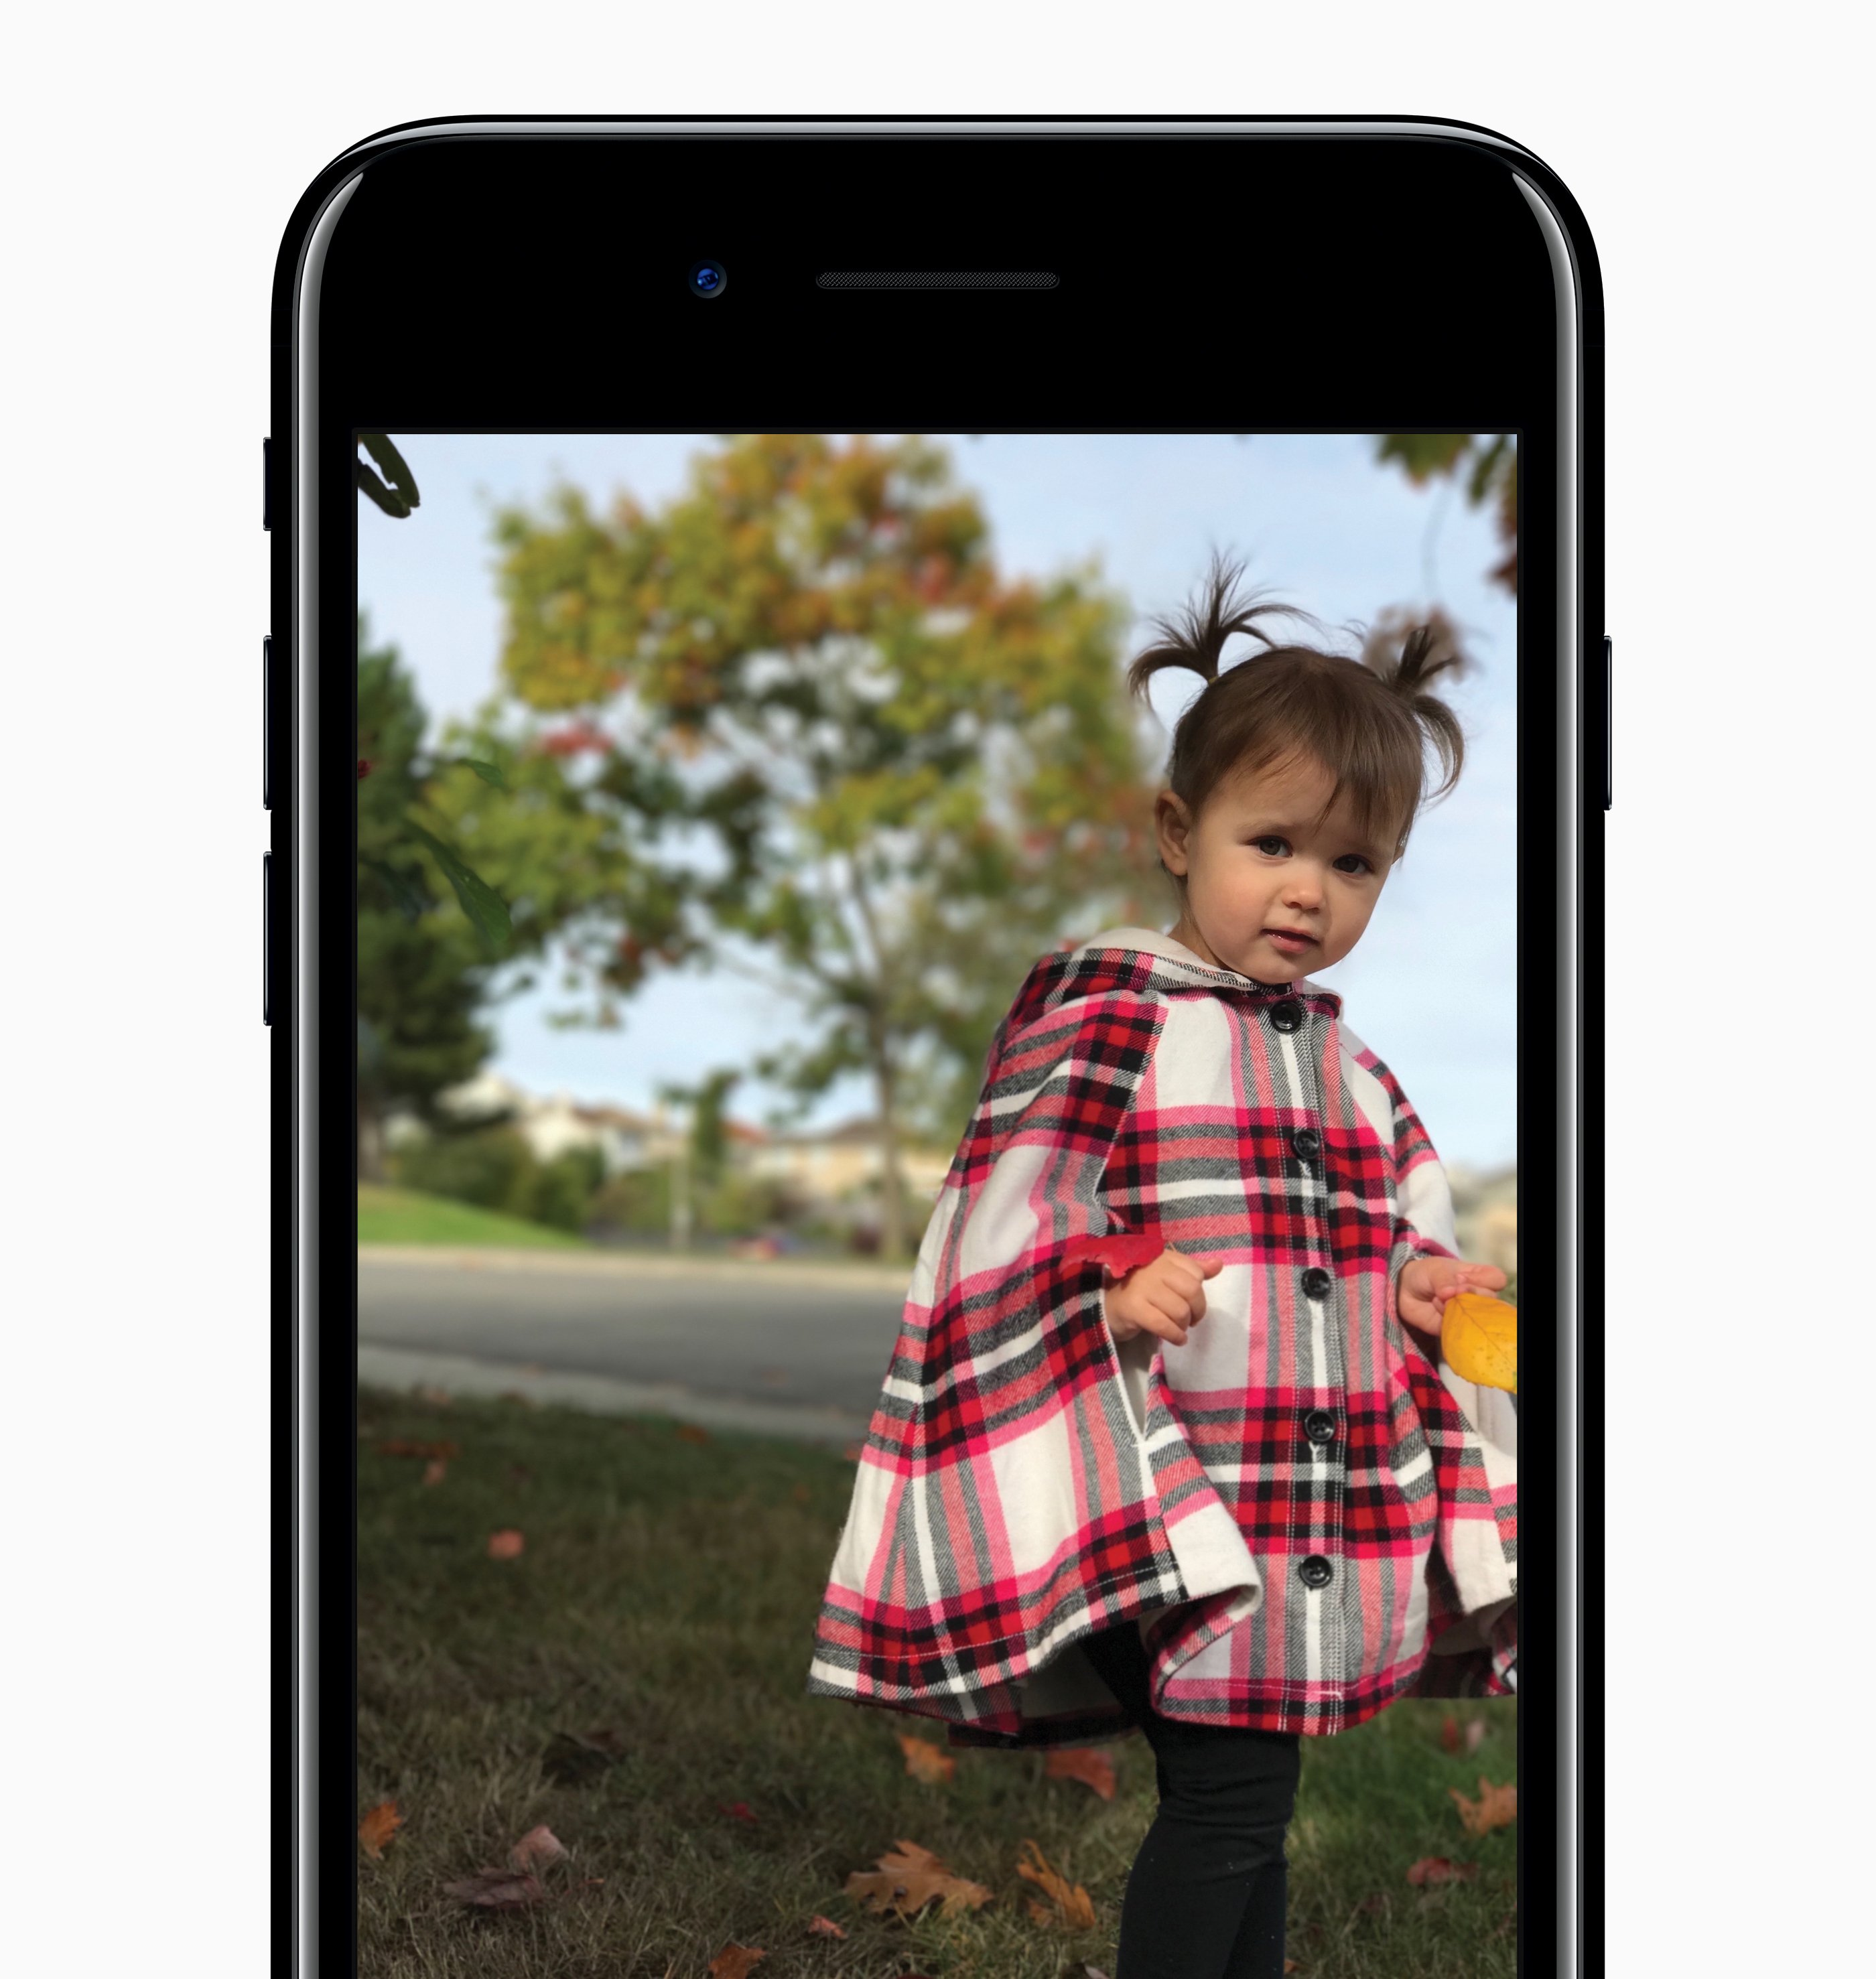 apple-website-teach-you-how-to-use-portrait-mode-on-iphone-7-plus-better_00